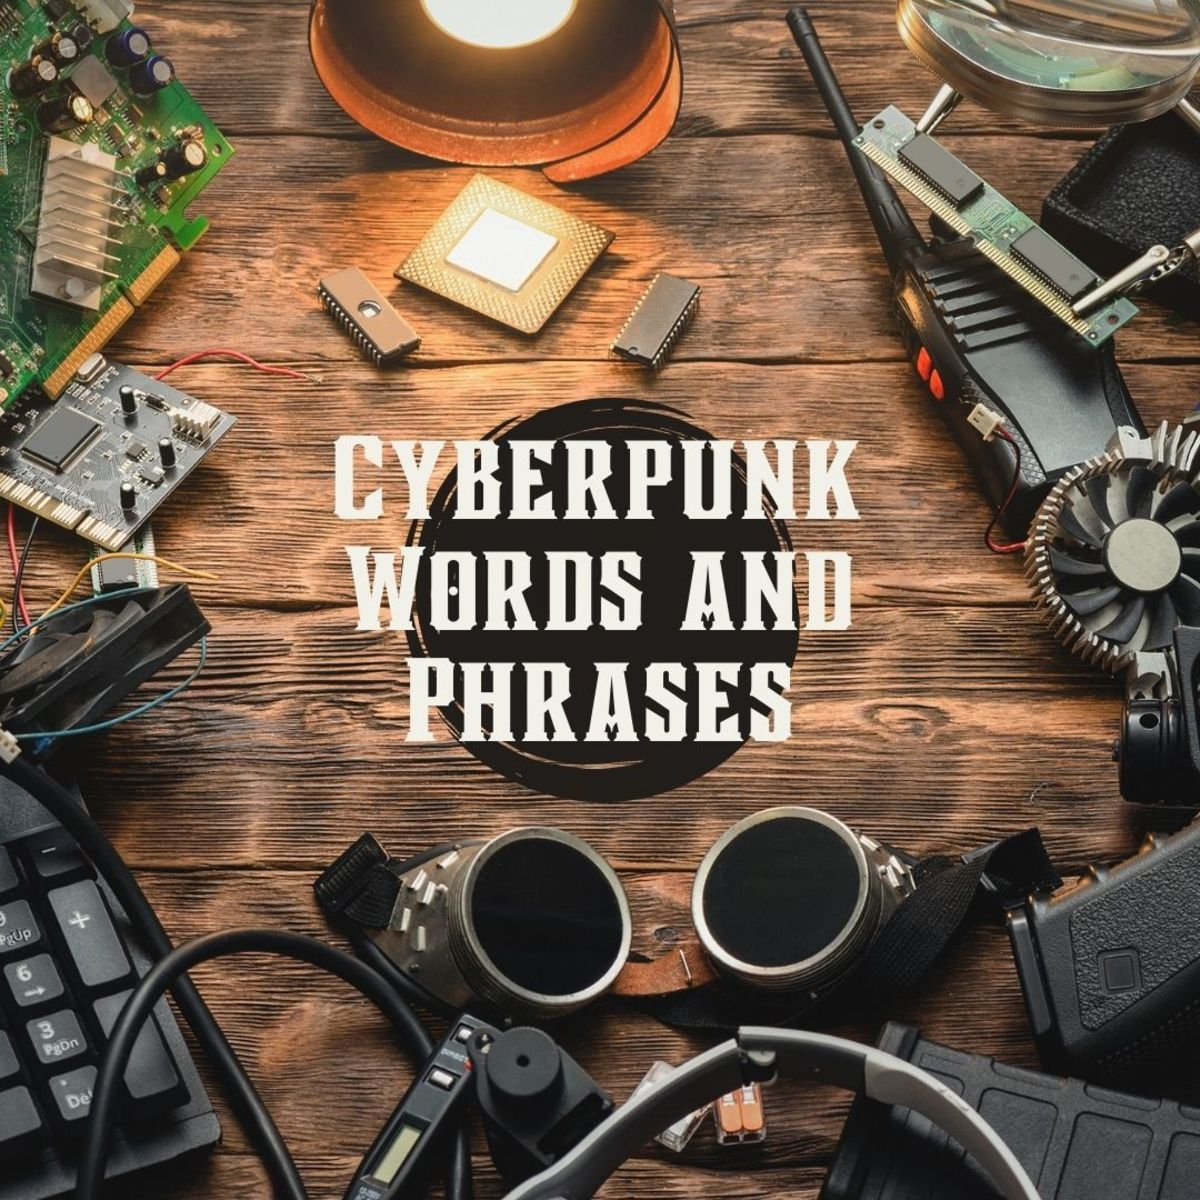 Cyberpunk Slang: An Index of Geek Slang & Future Slang Words